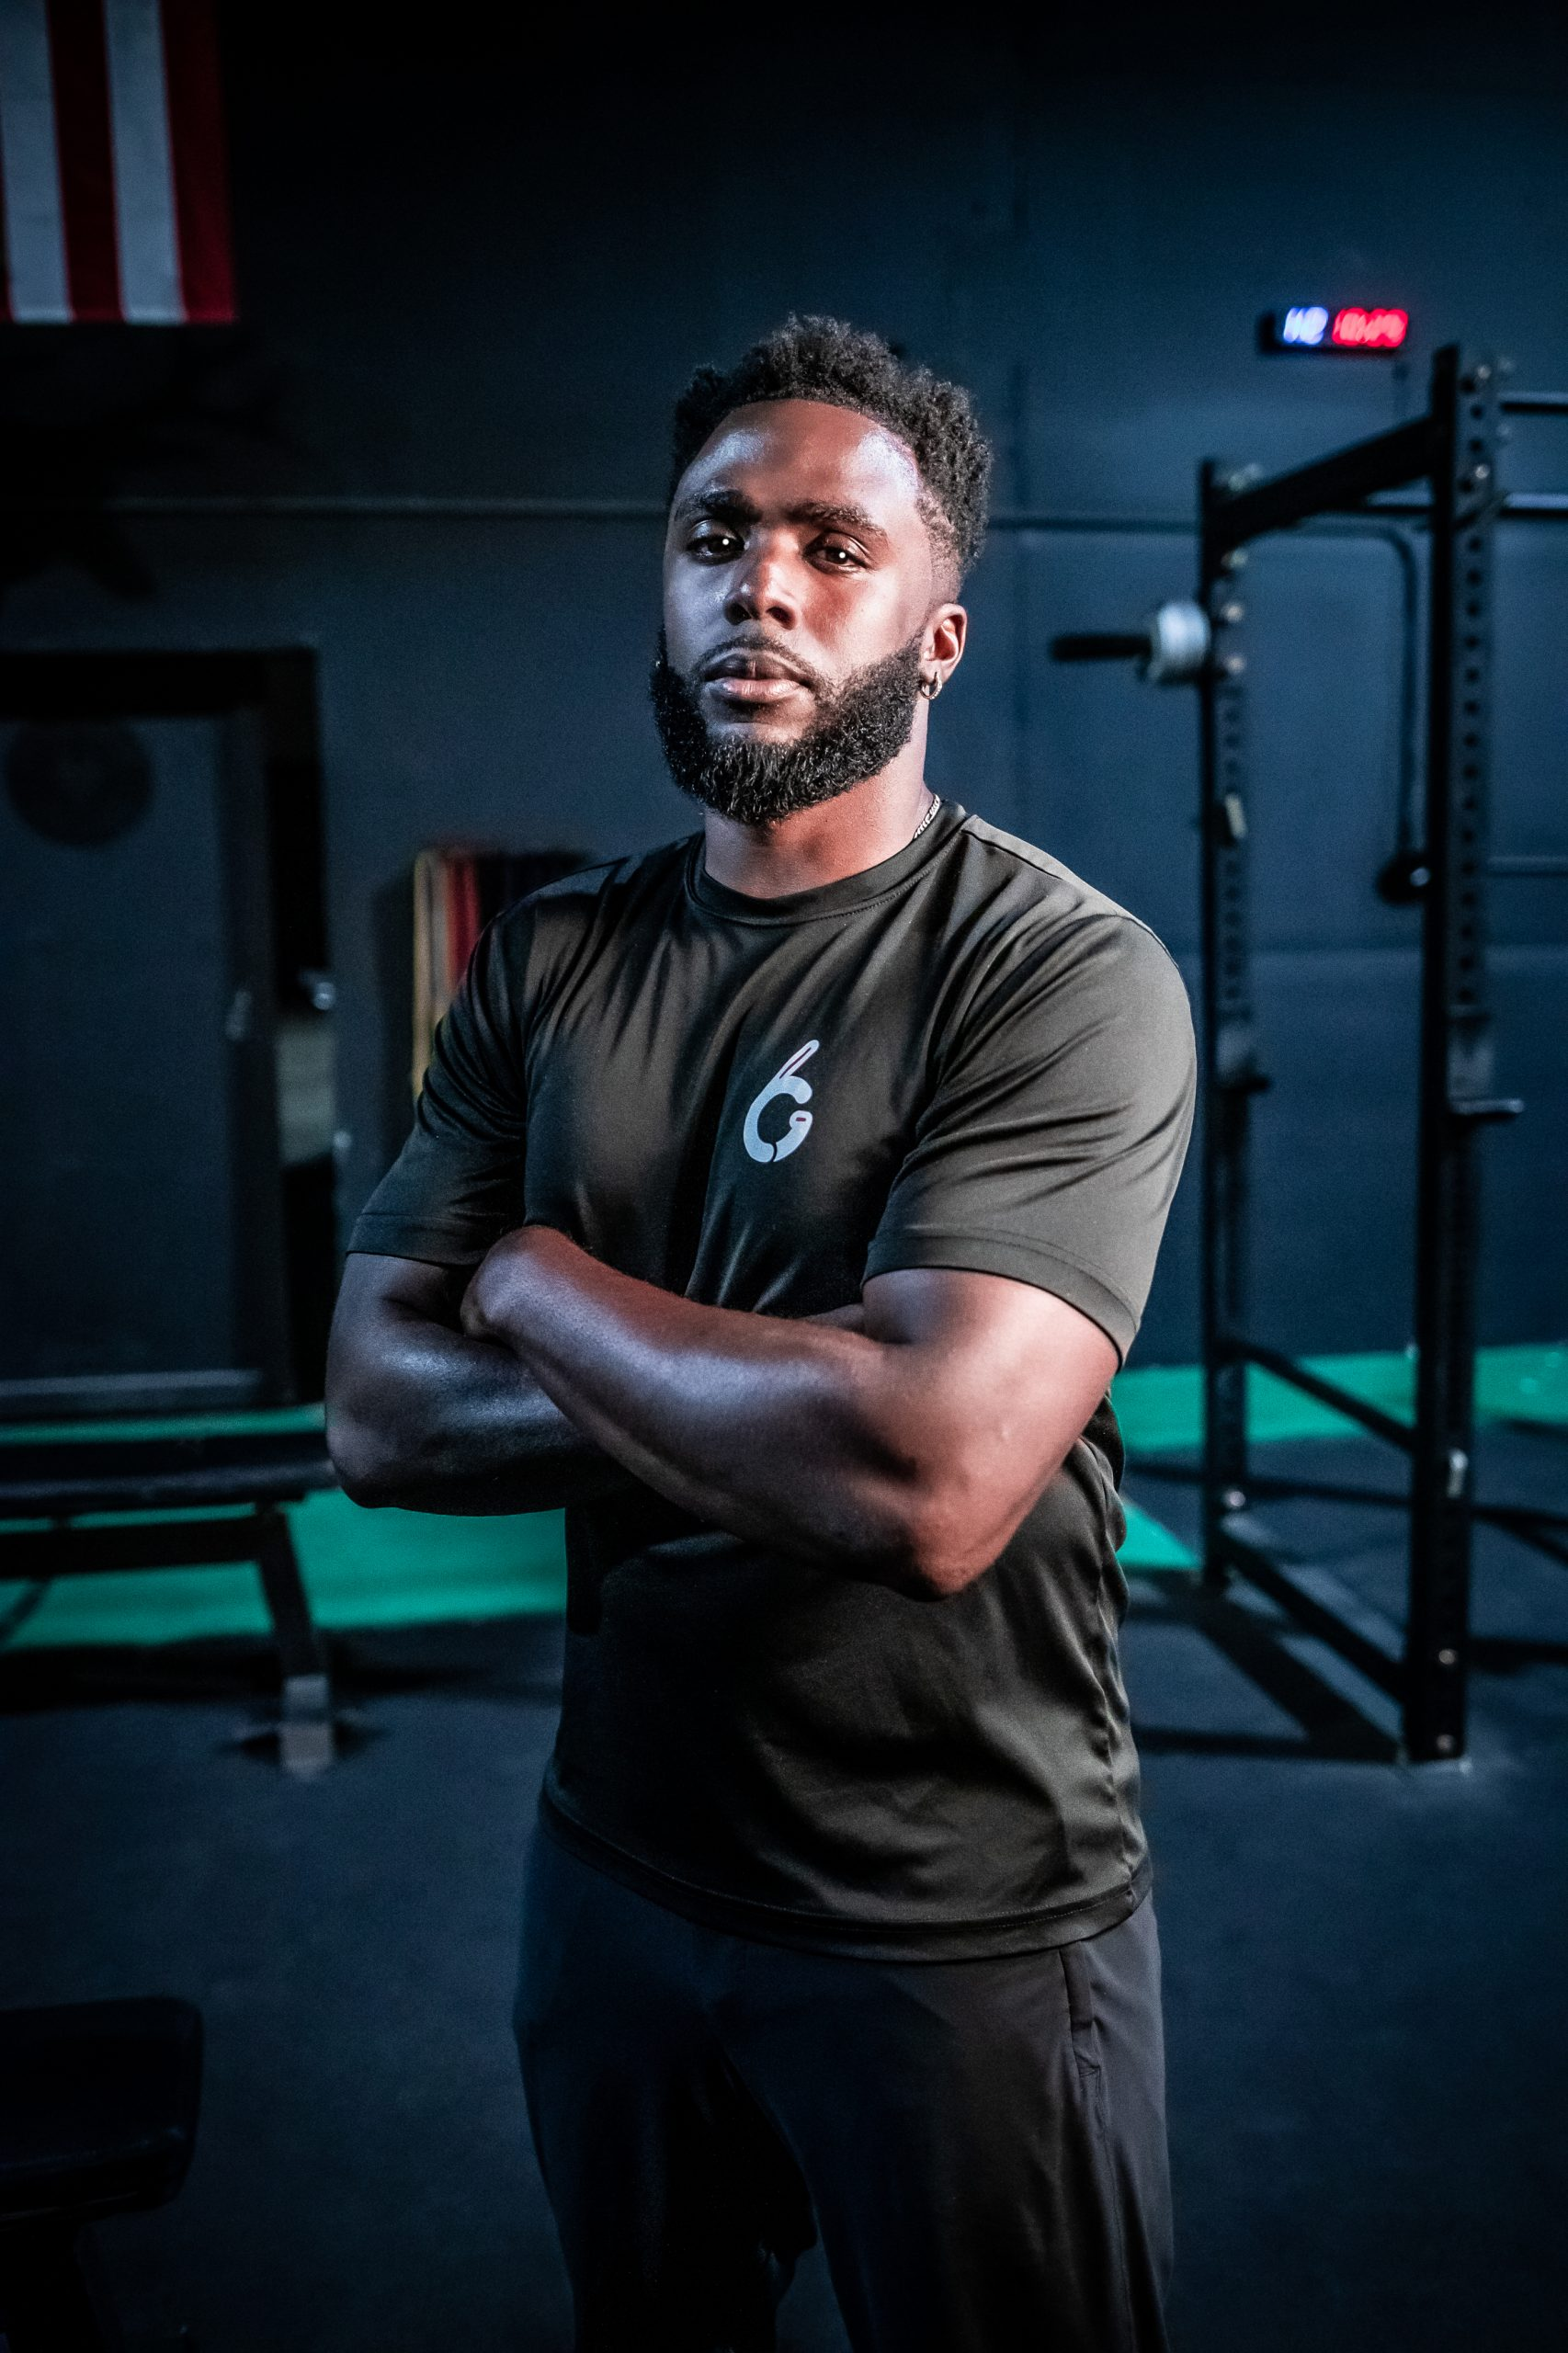 G6 Athletes | Founder and Head Coach - Gabe Lemon